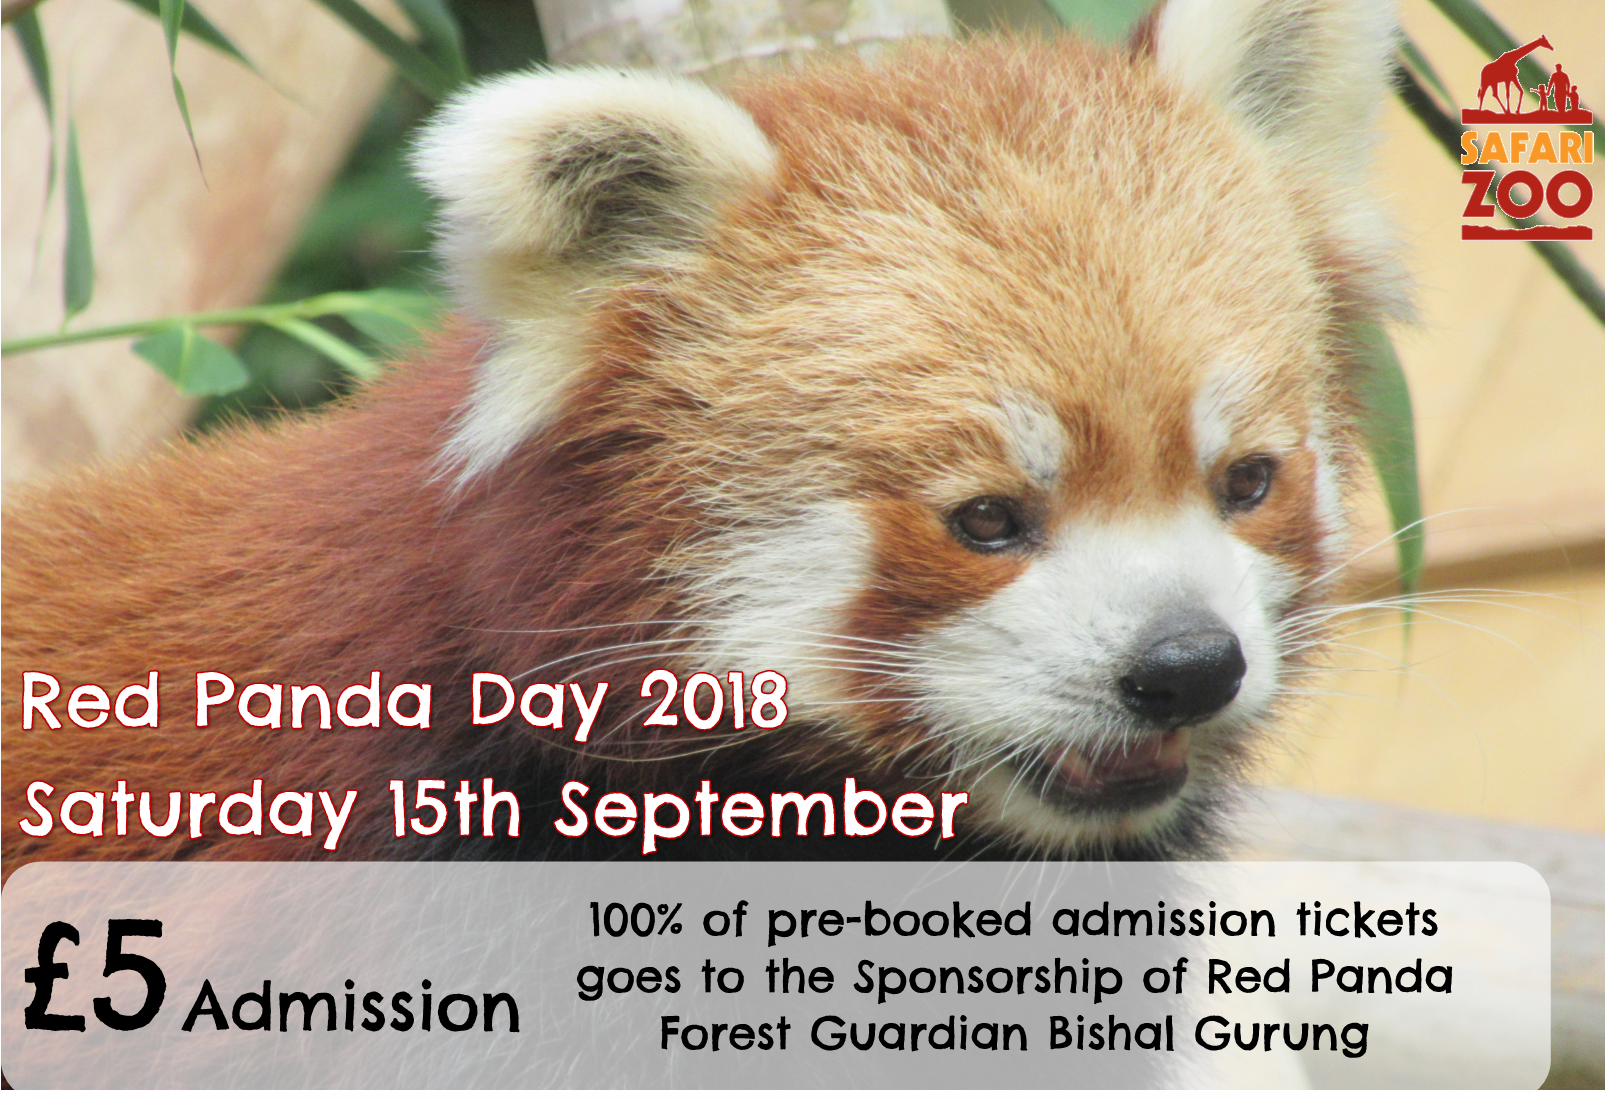 Sponsoring a Red Panda Forest Guardian